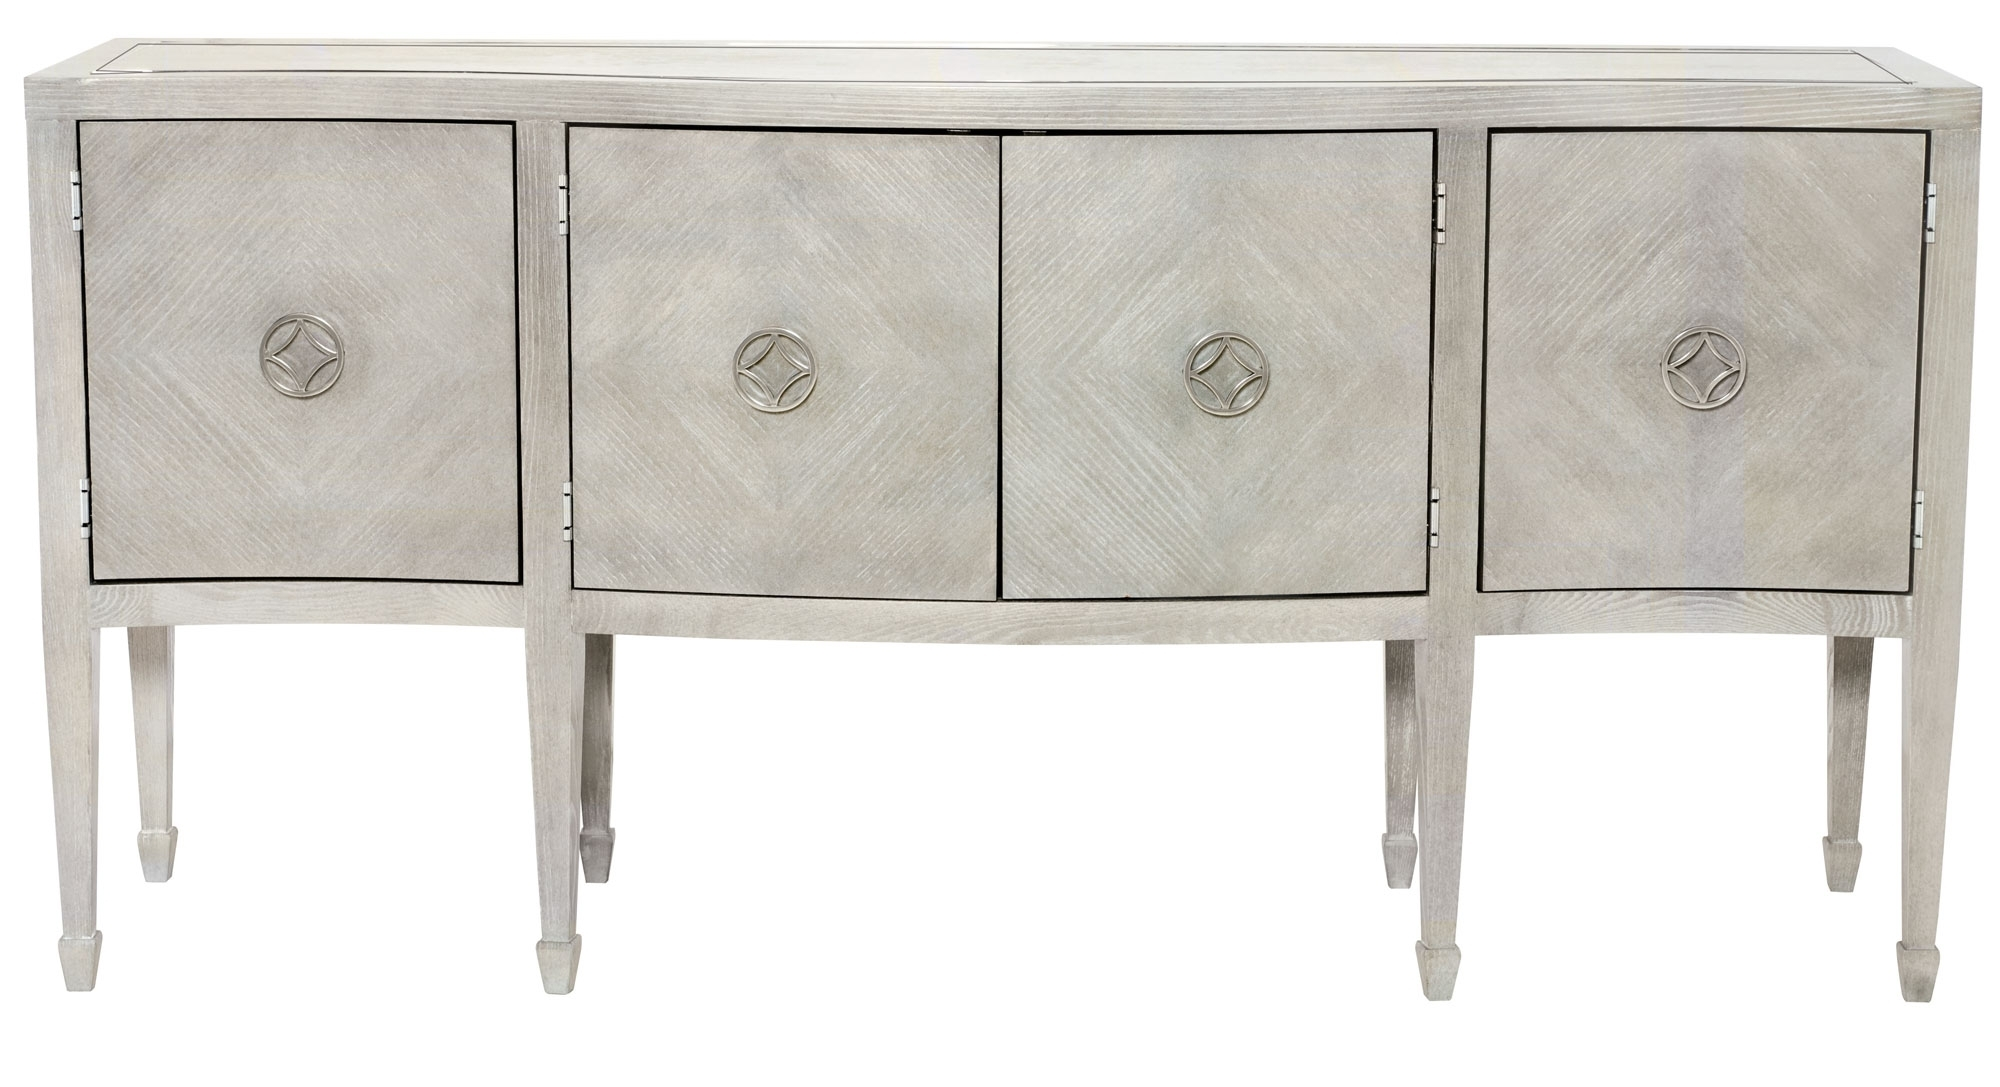 Cabinets, Consoles & Sofa Tables | Htgt Furniture For Best And Newest Gunmetal Perforated Brass Sideboards (#3 of 20)